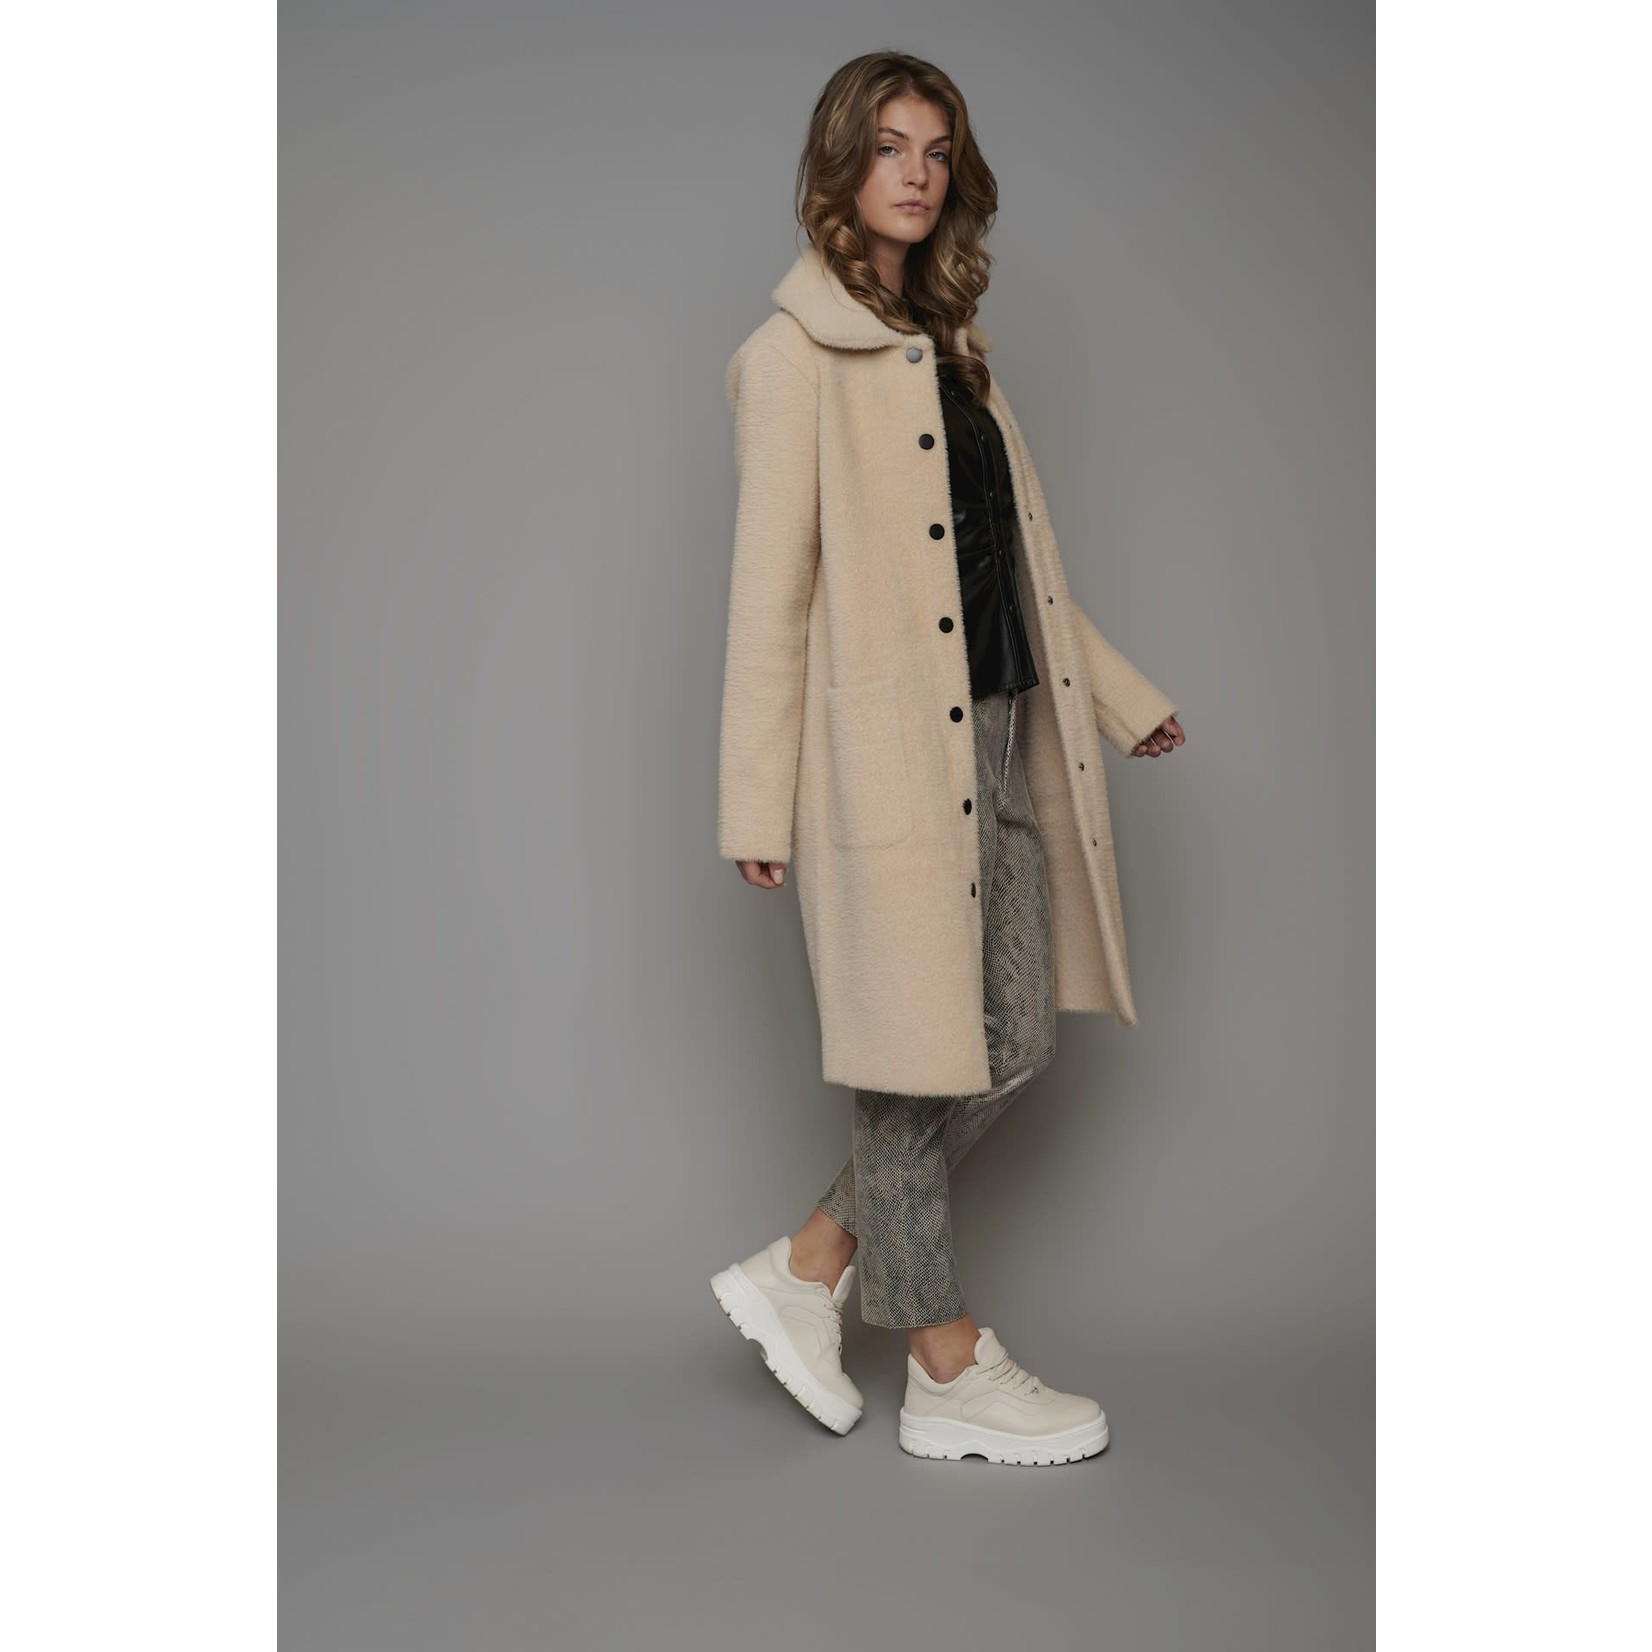 Rino & Pelle Dence Knitted Coat Cloudy Pink700W21